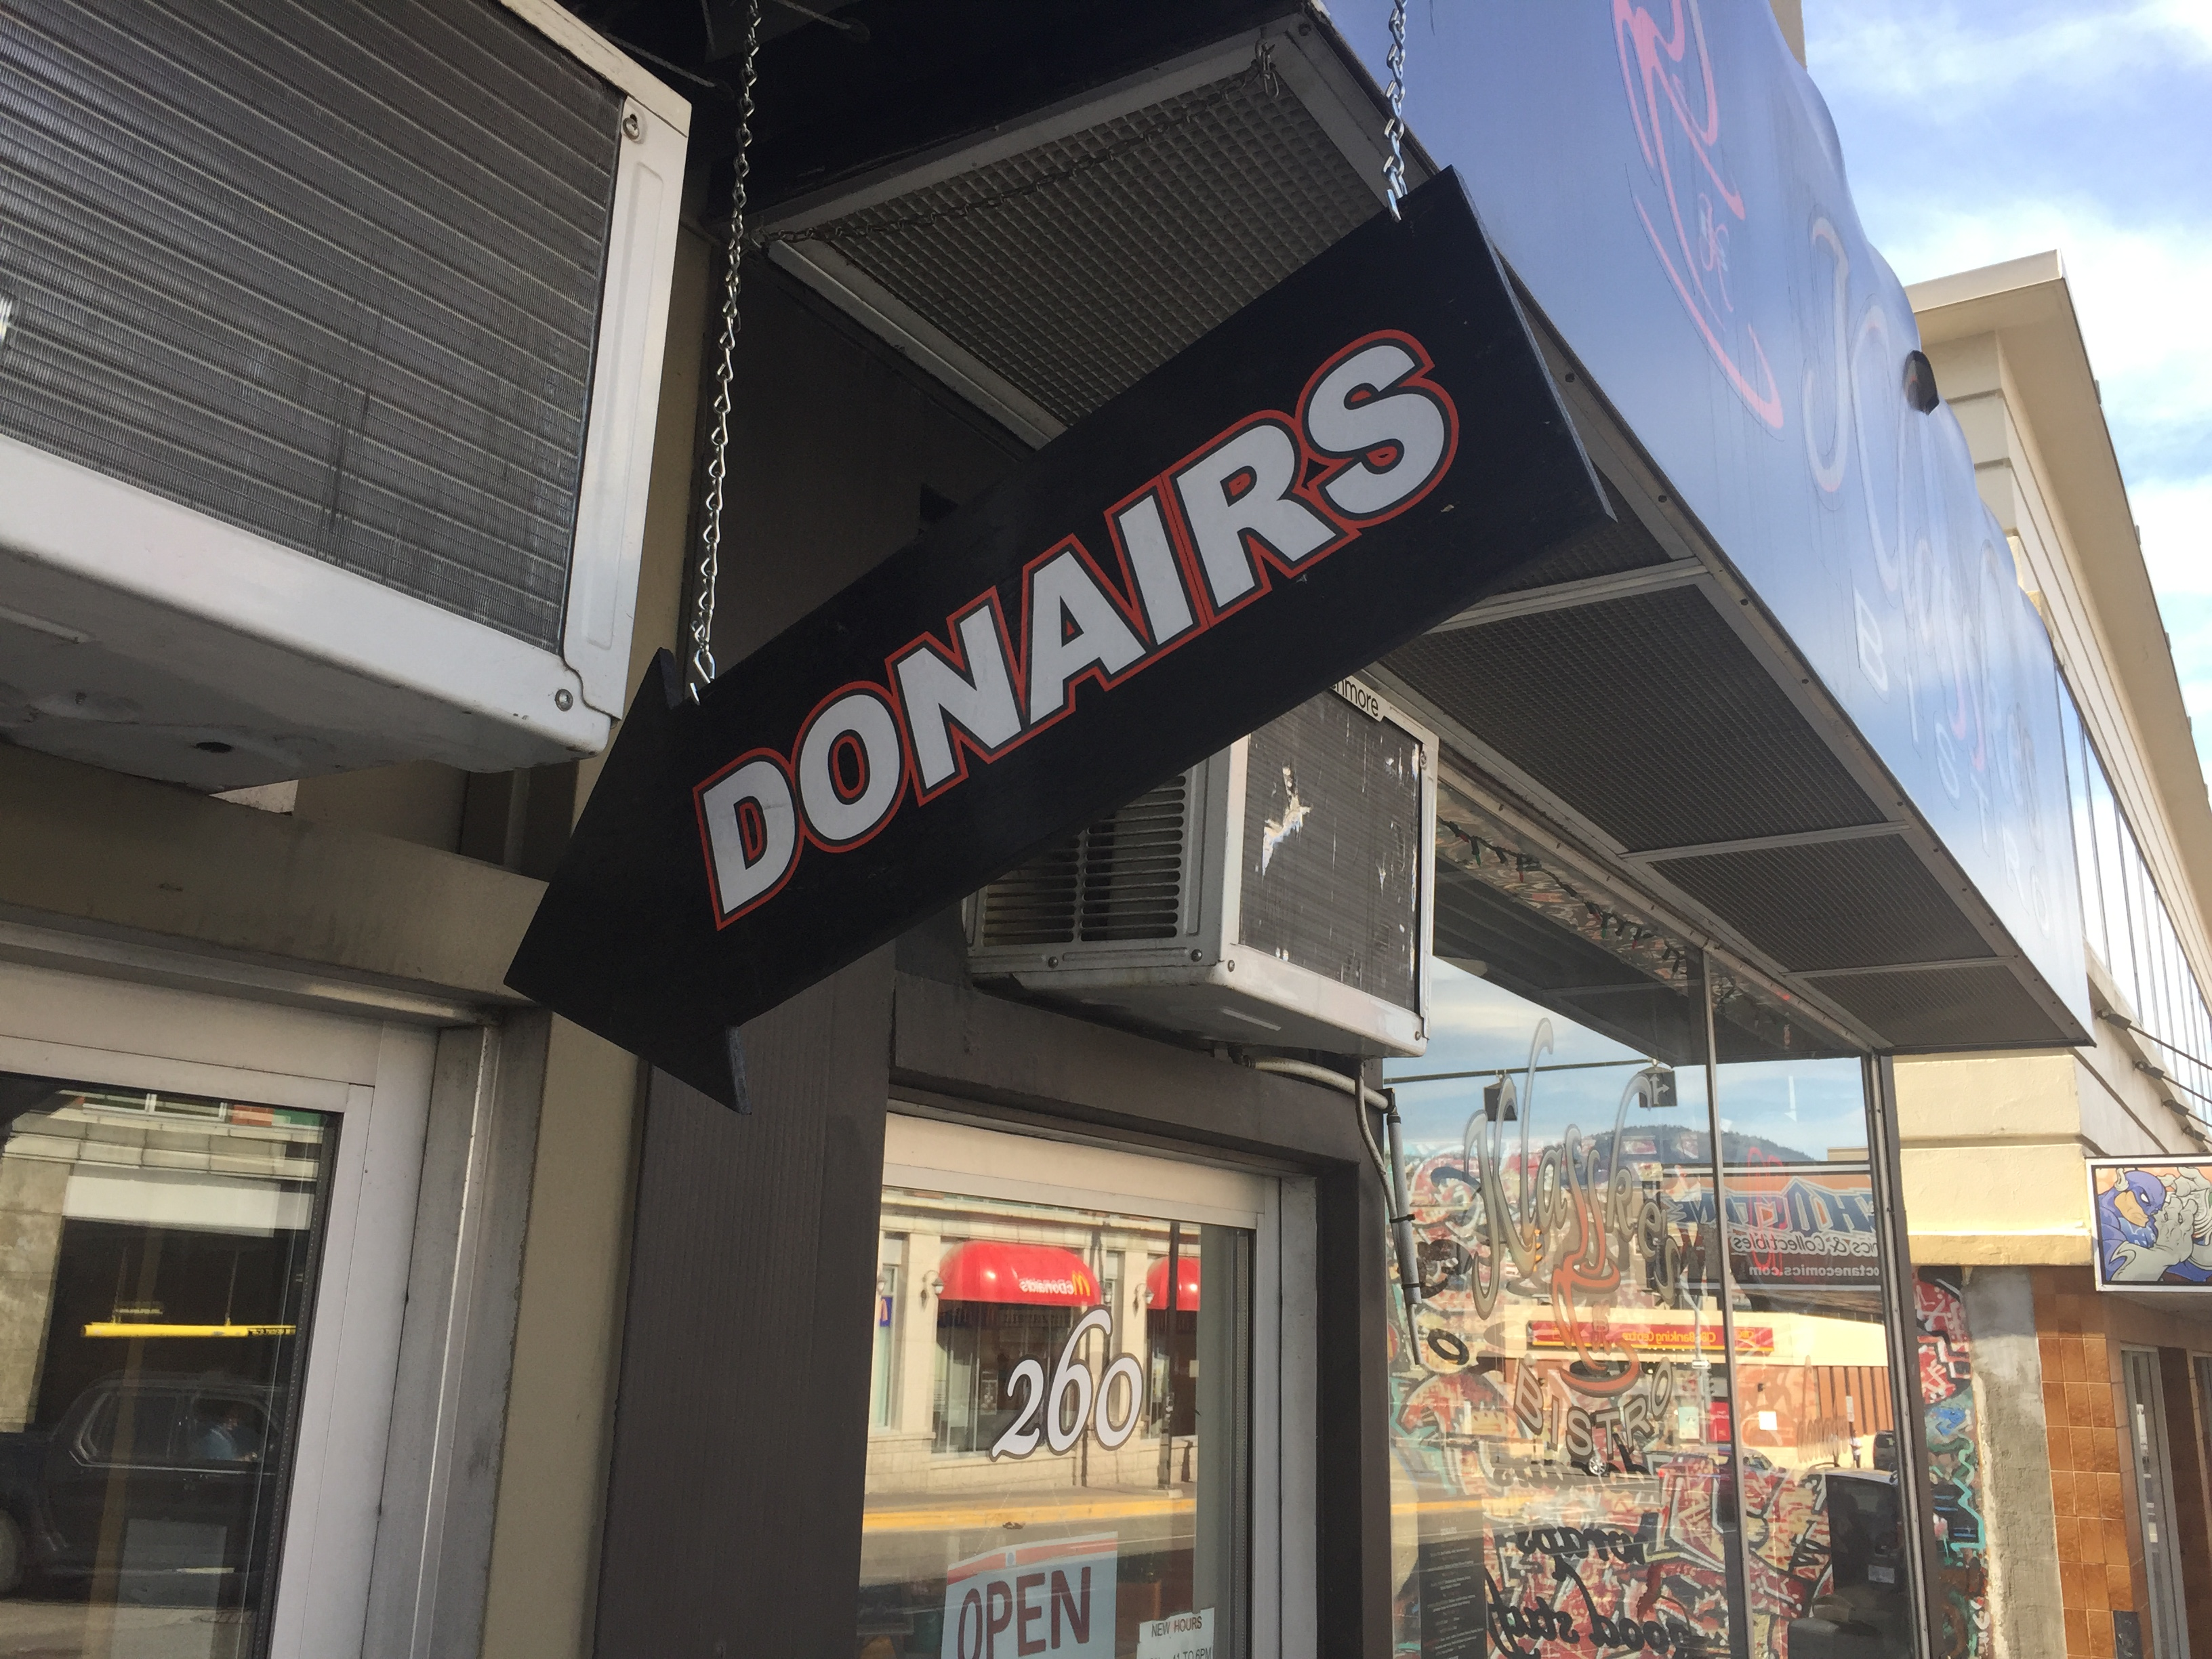 best donairs in kamloops